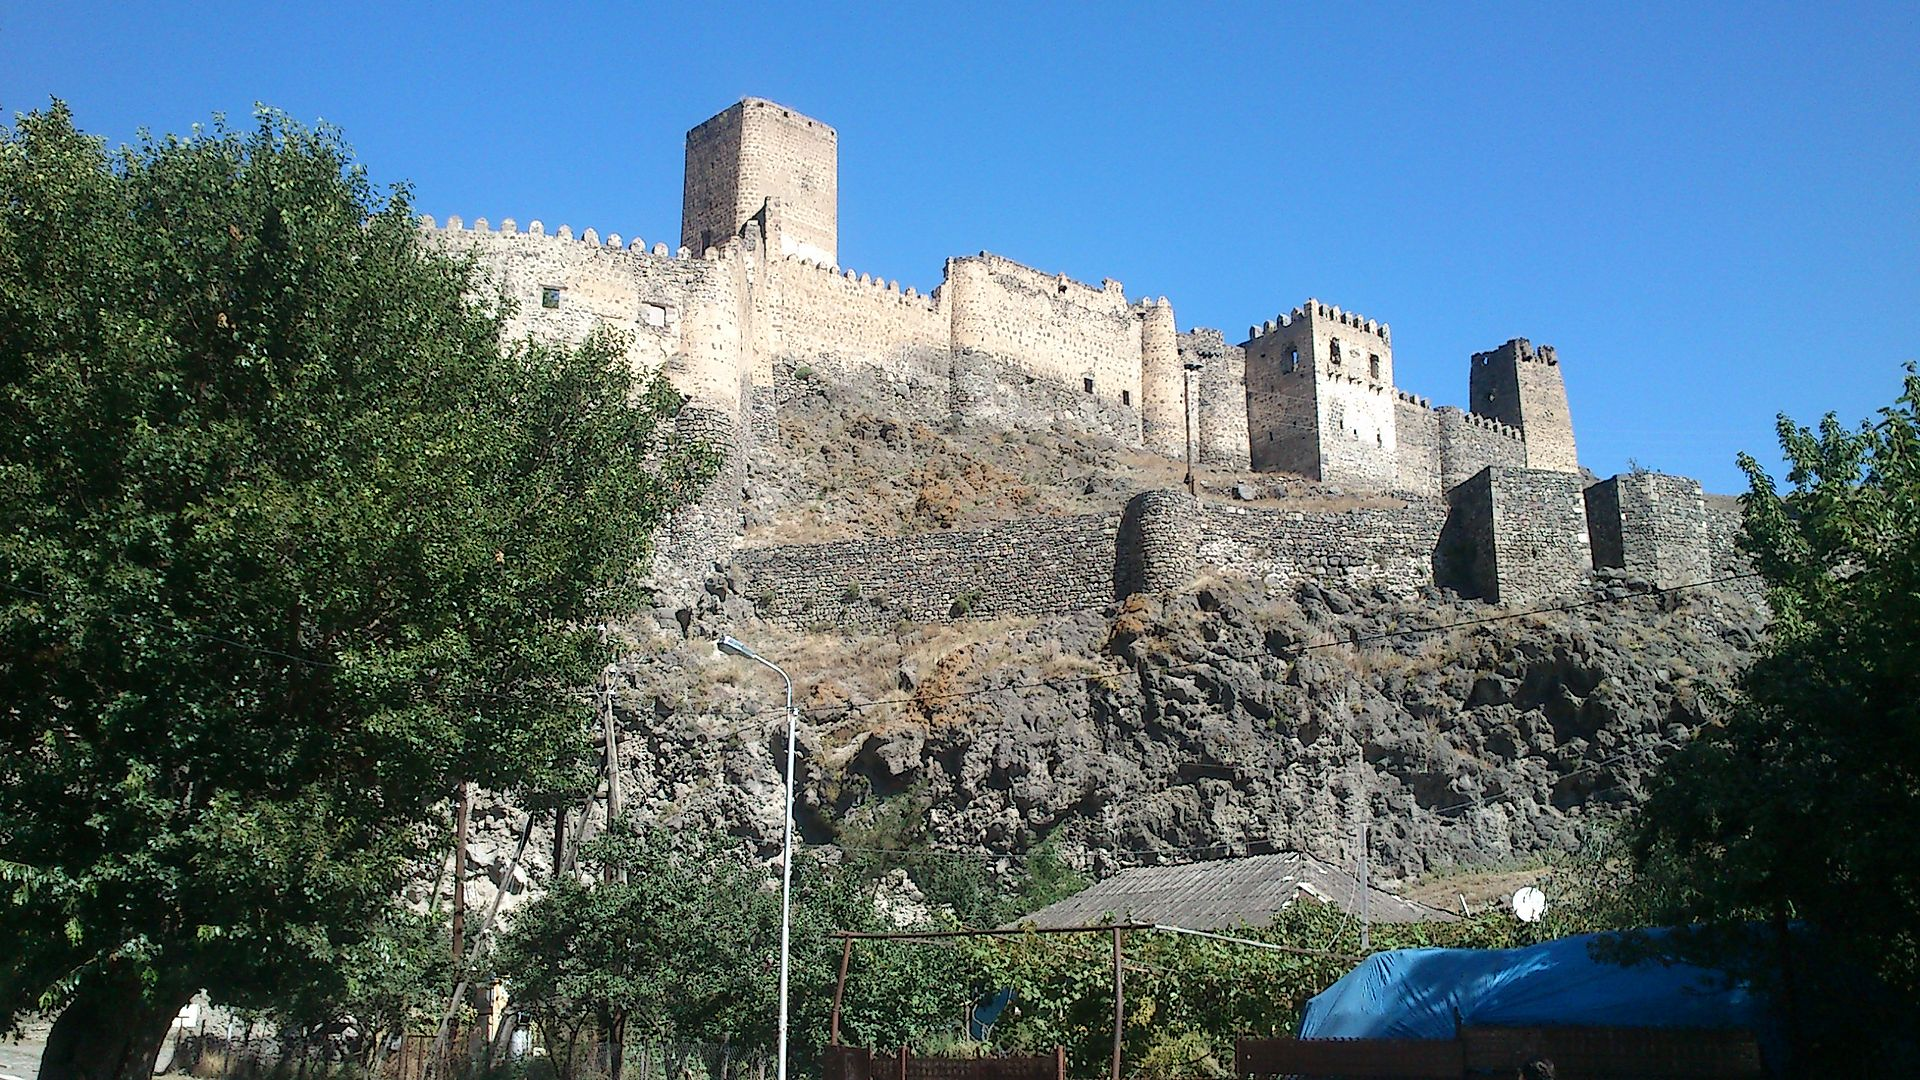 Castle_of_Khertvis_51.jpg